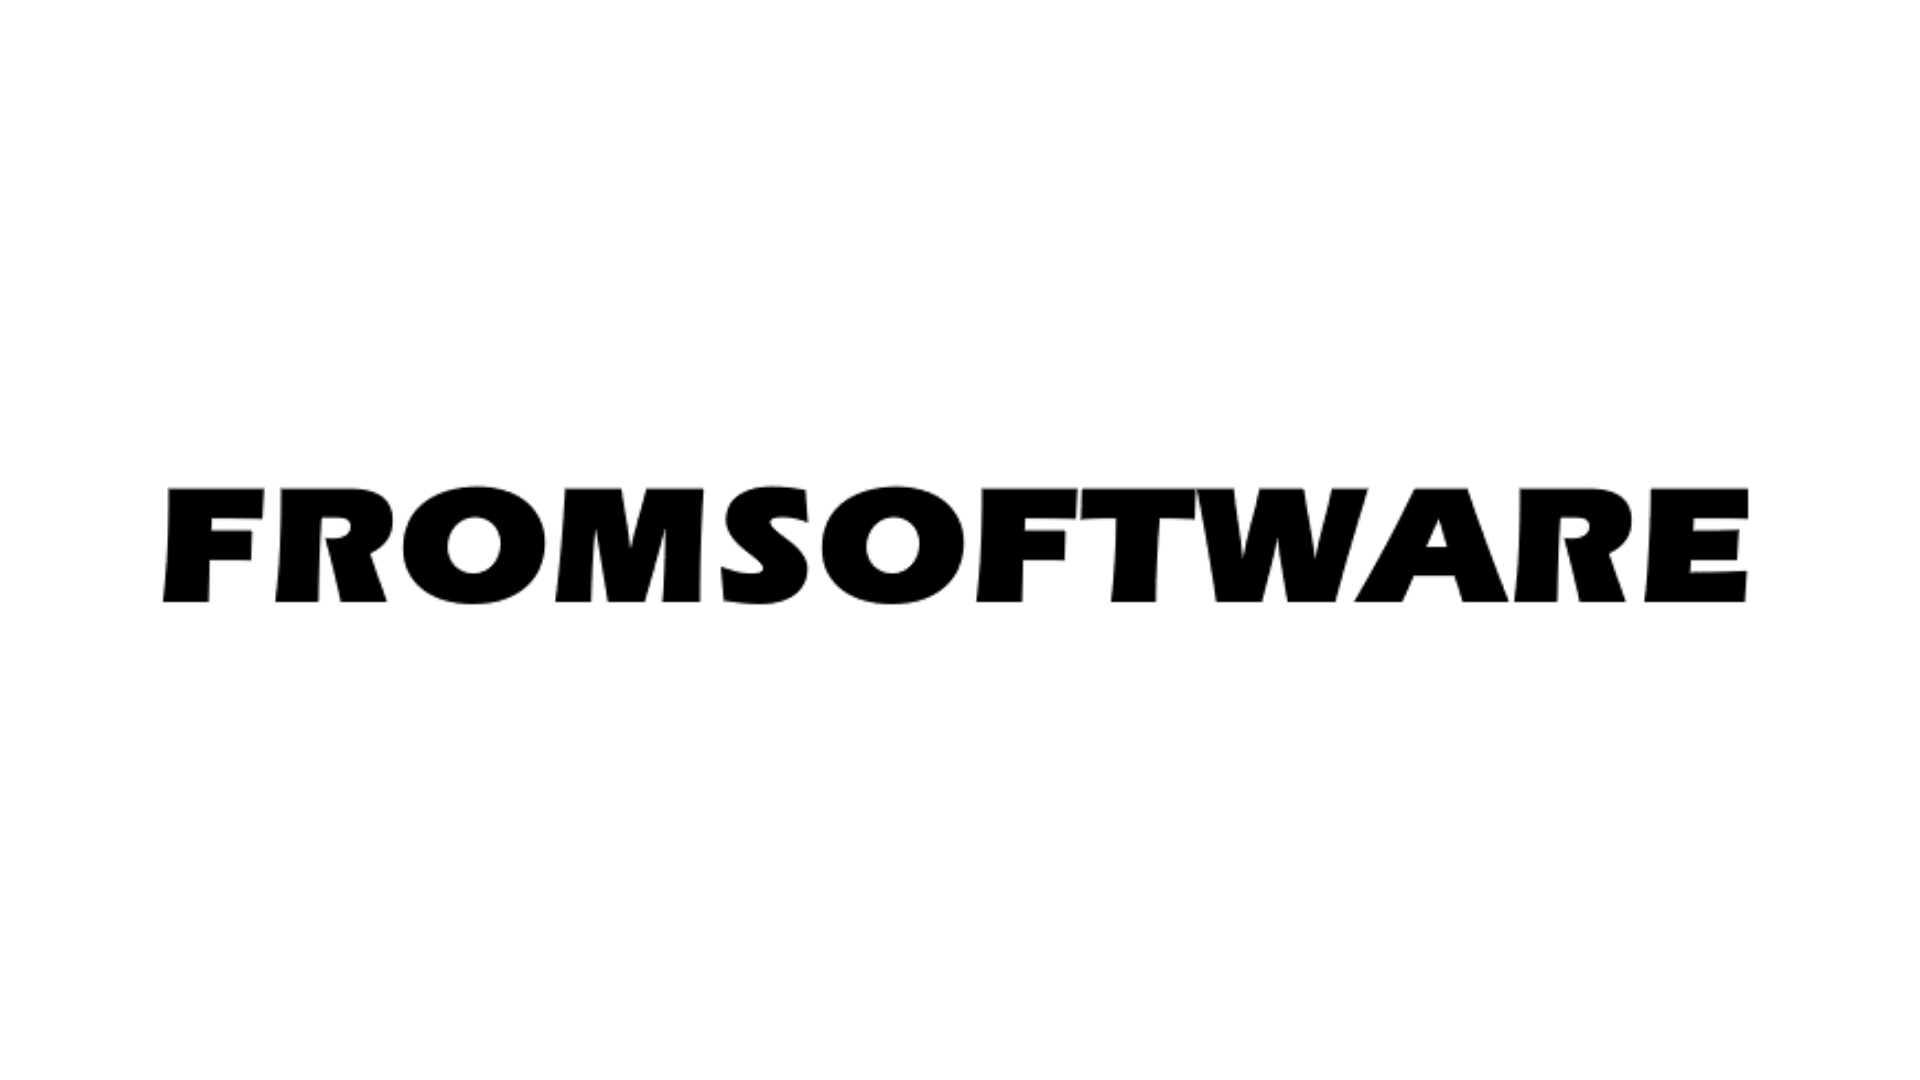 fromsoftware logo